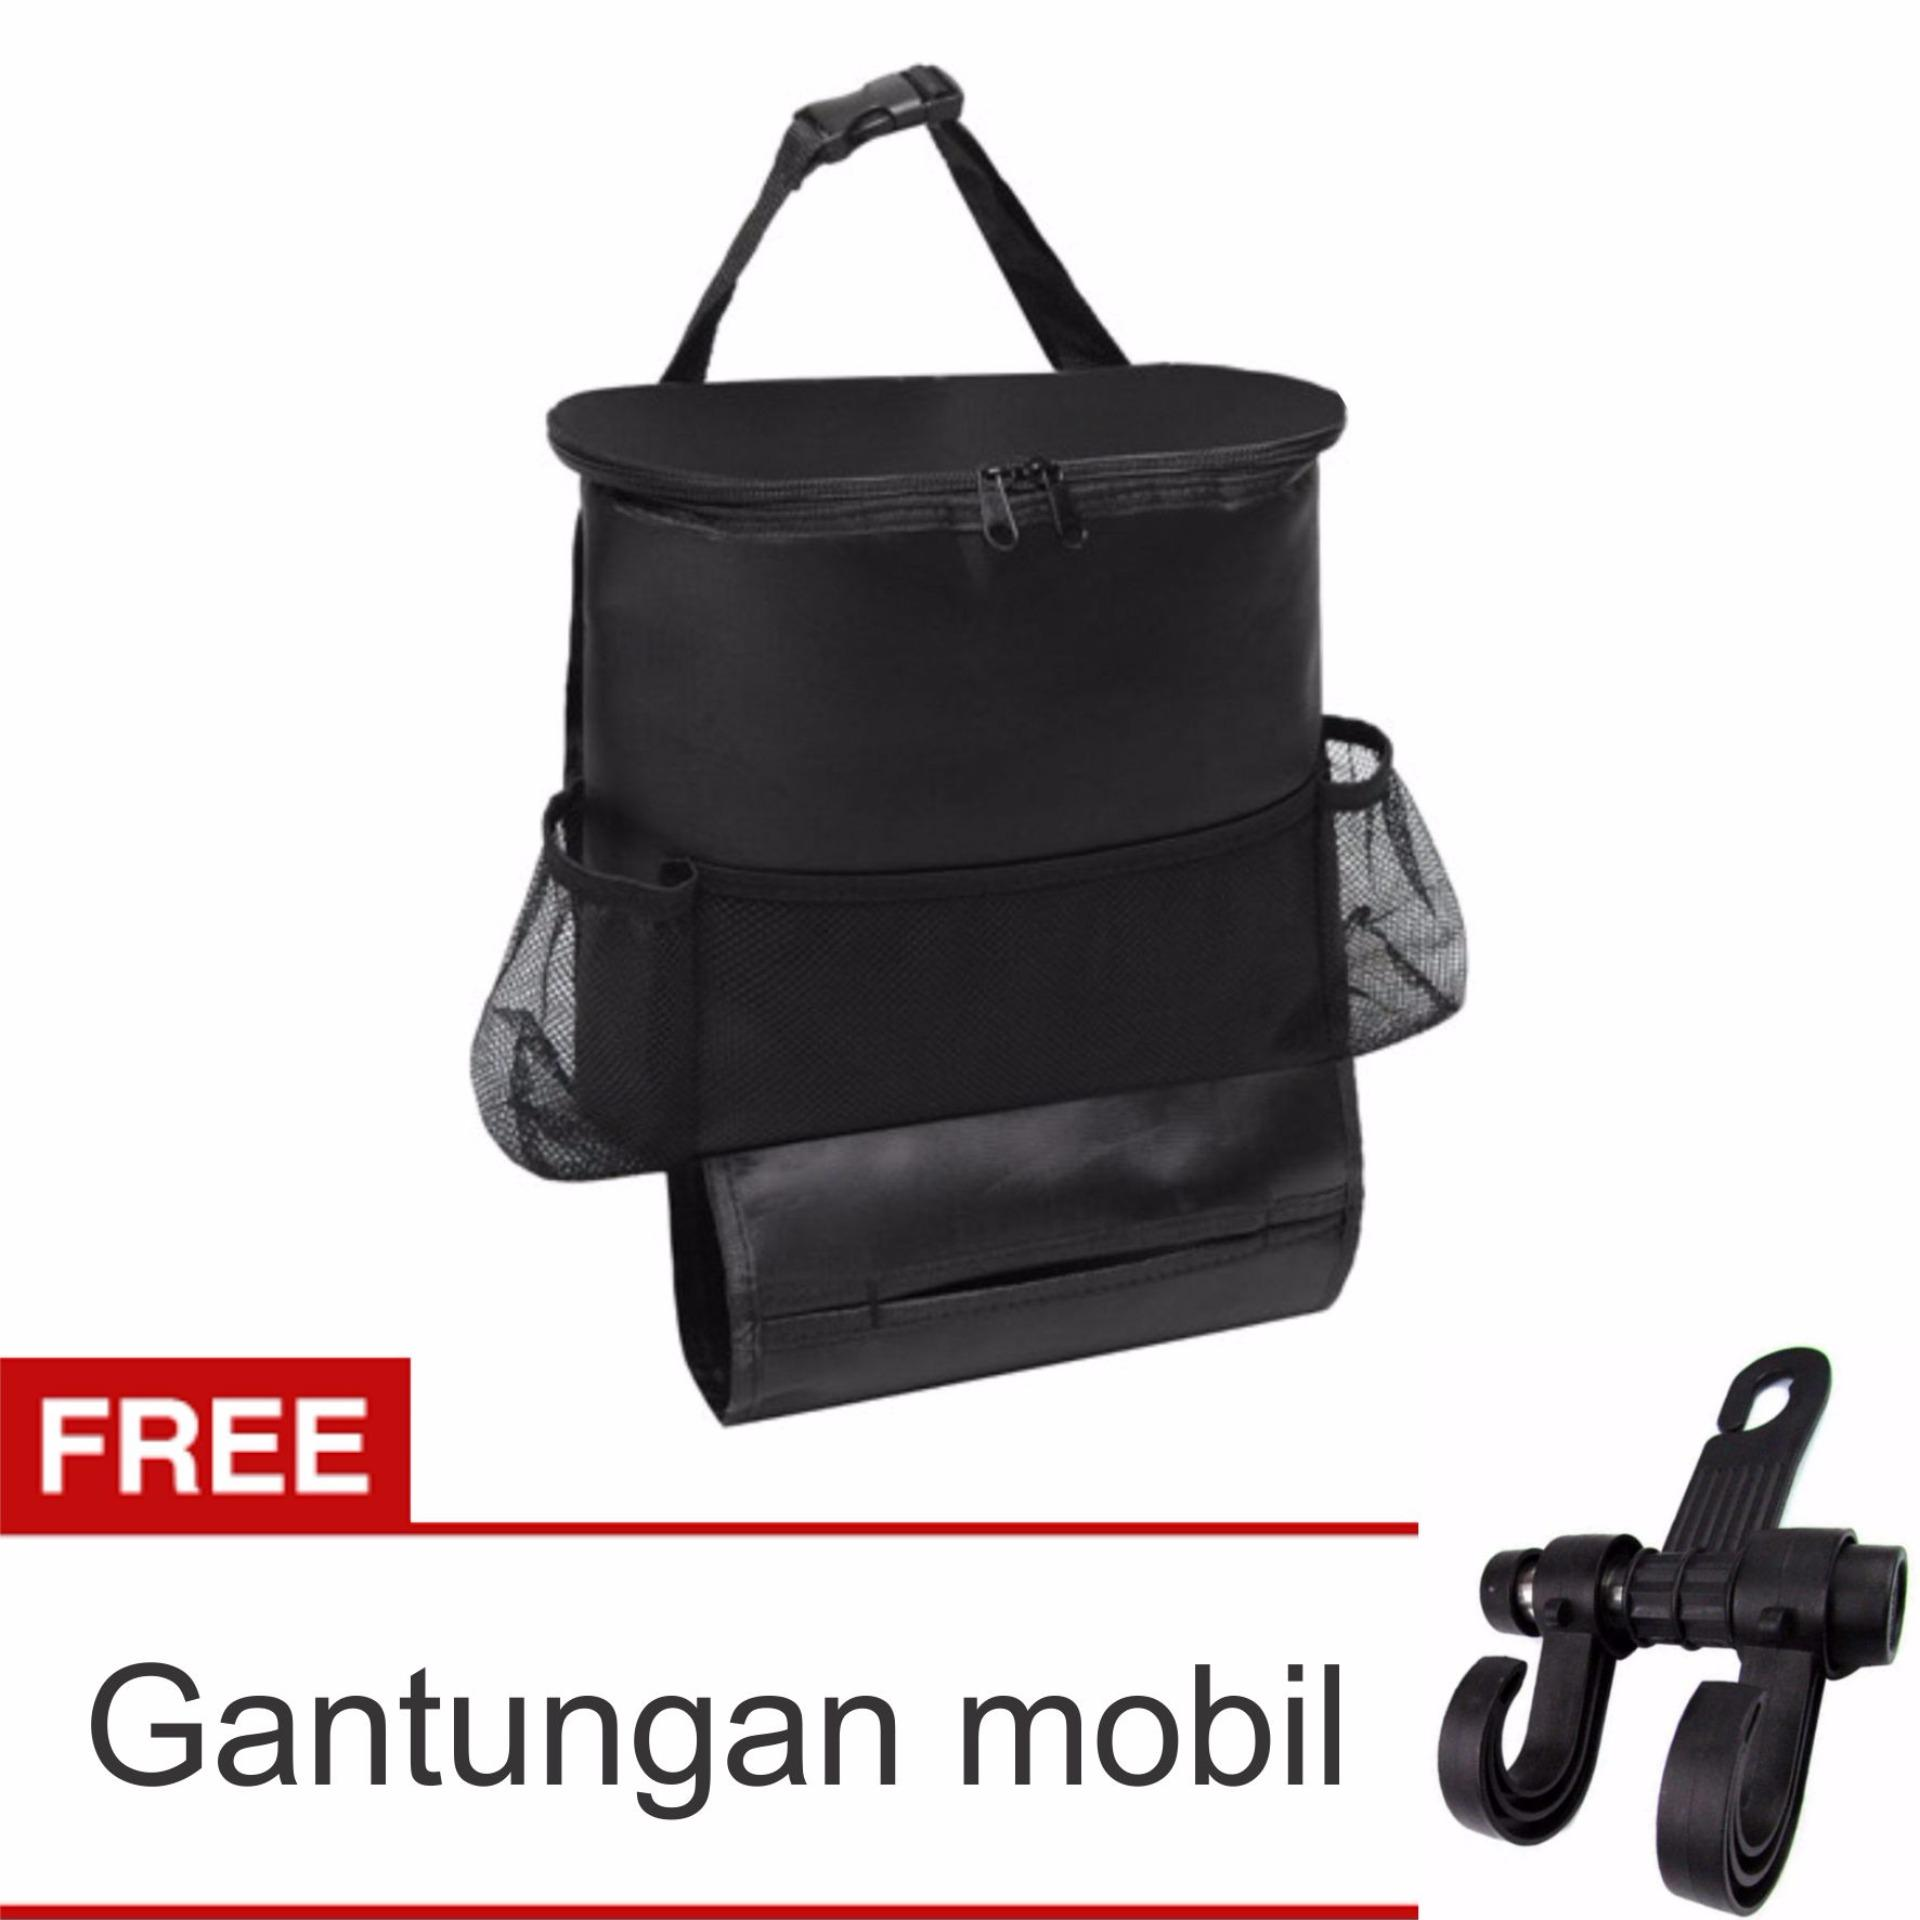 Lanjarjaya Car Seat Organizer Holder Travel Storage cooling HangingBag + Gantungan mobil(Black)